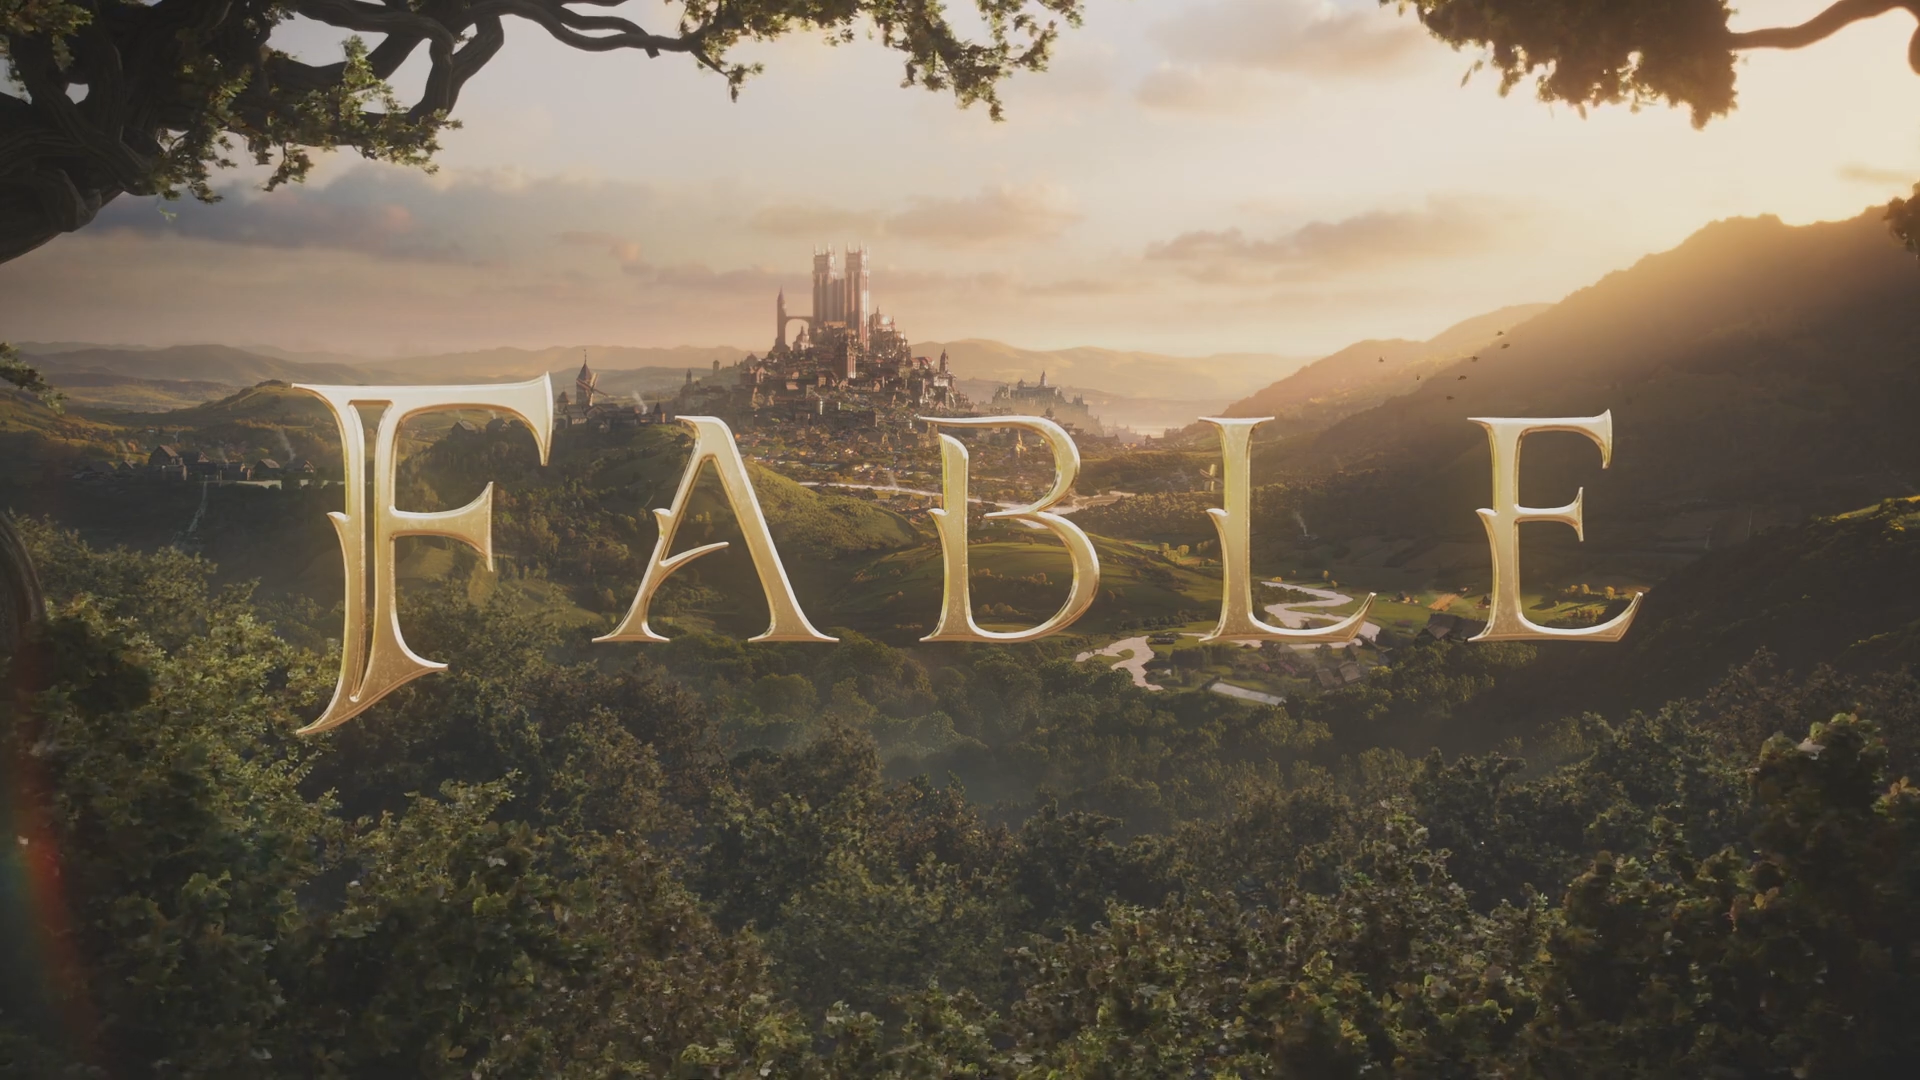 fable-official-announce-trailer-00-02-04-22-still001.png